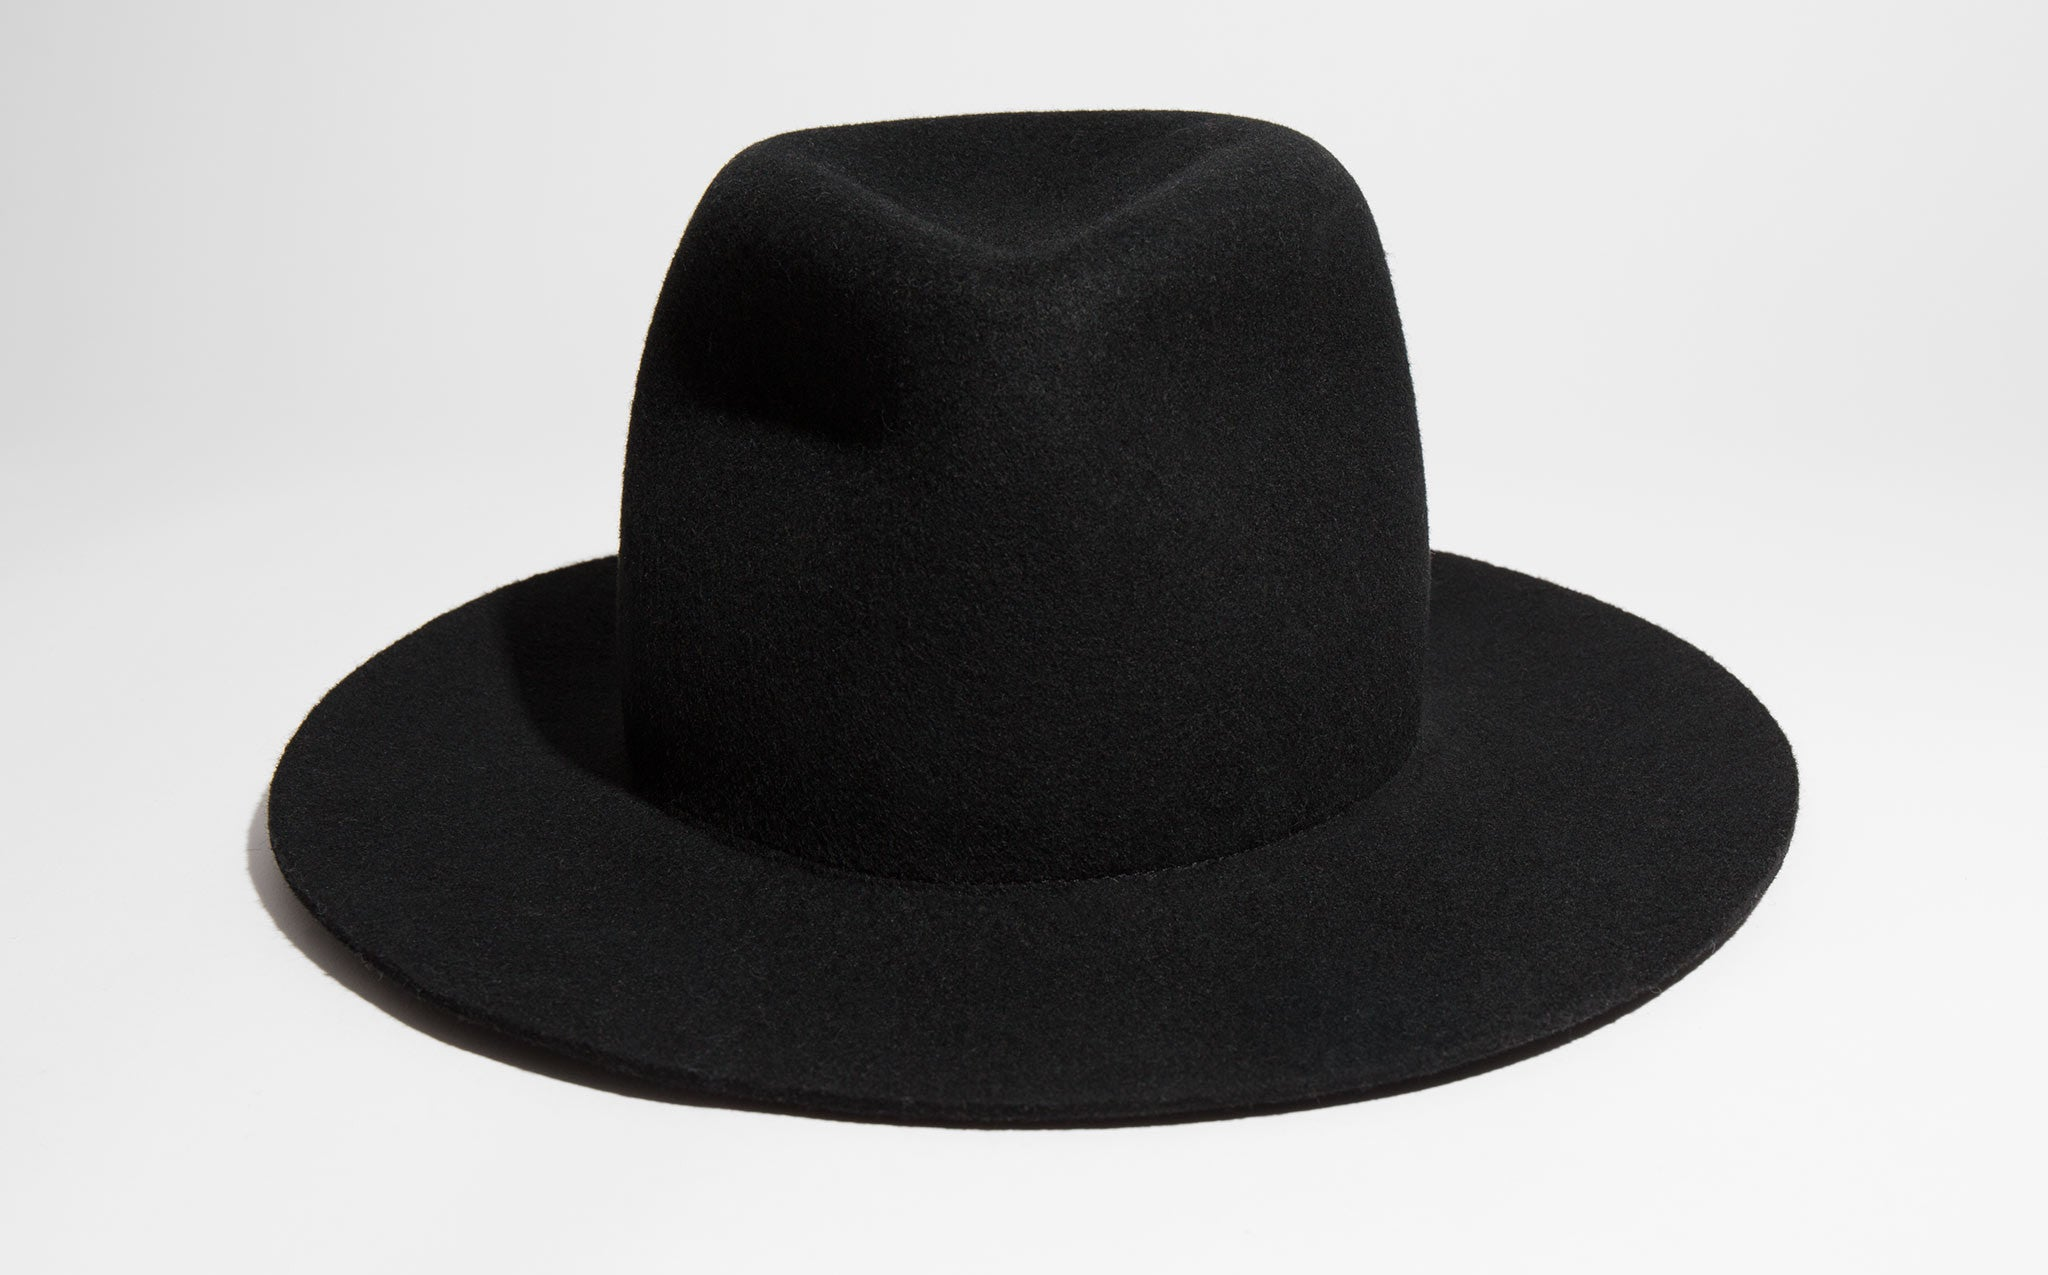 Clyde Black Wool Pinch Hat kindred black